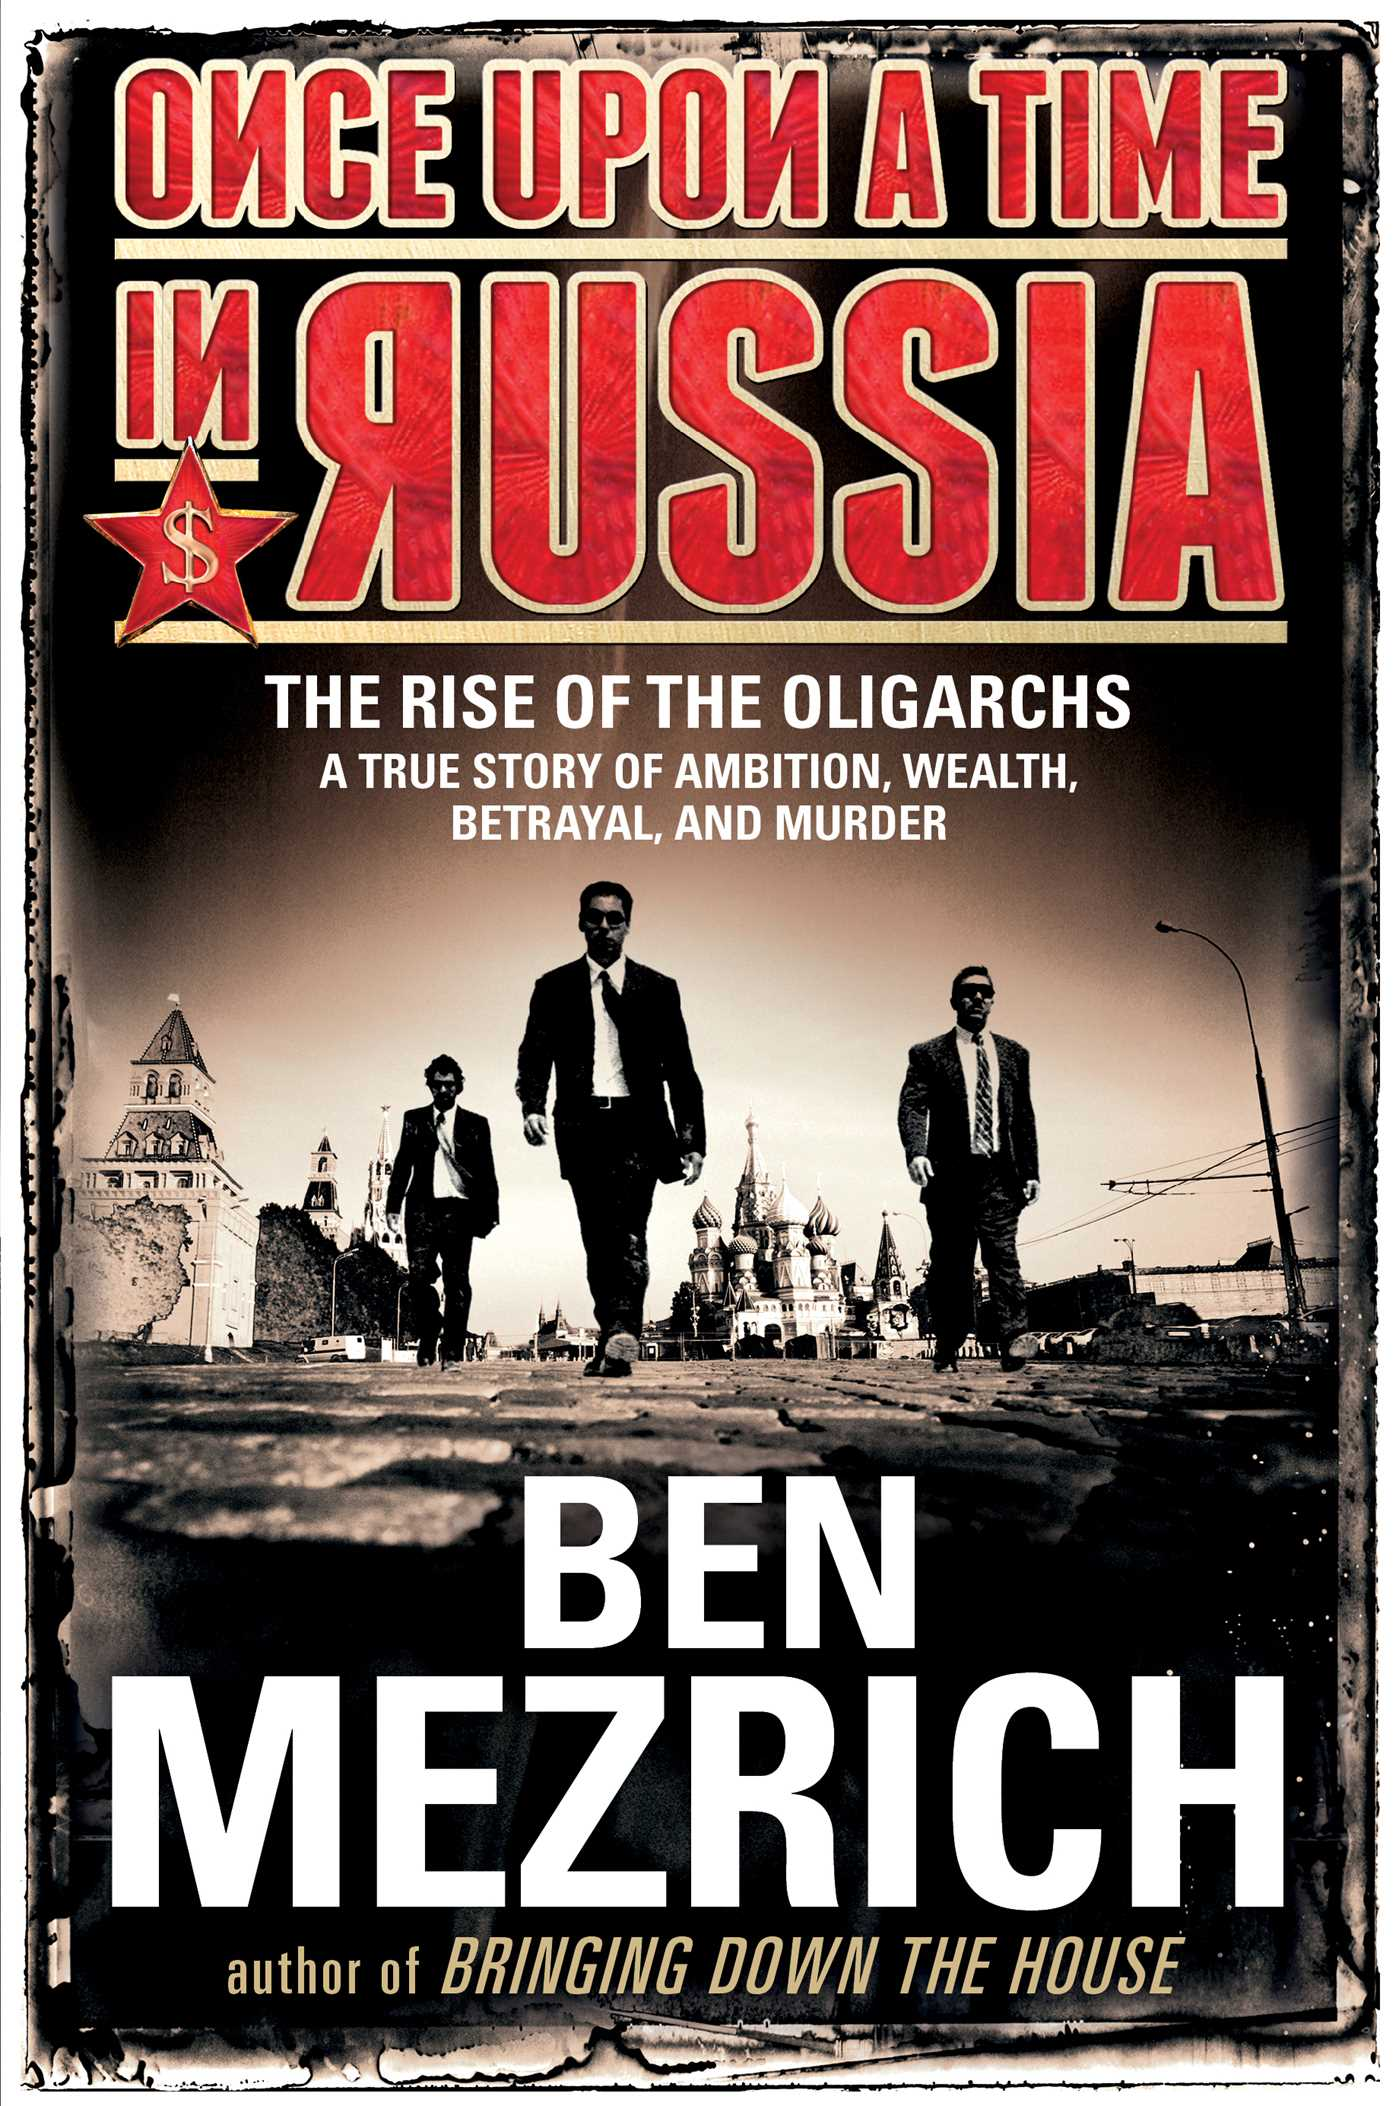 Book Cover Image (jpg): Once Upon a Time in Russia